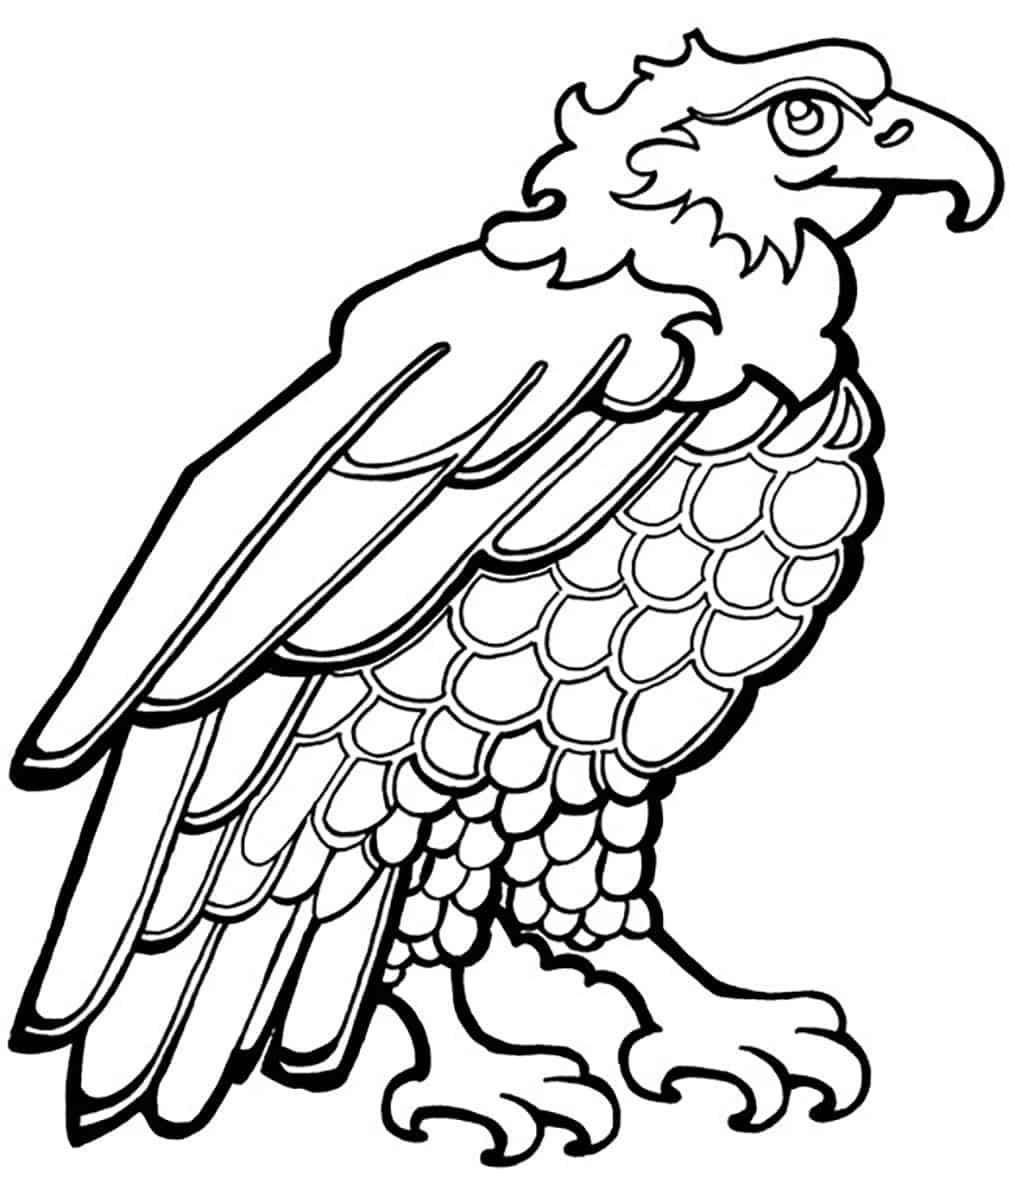 firework coloring pages eagle - photo#6